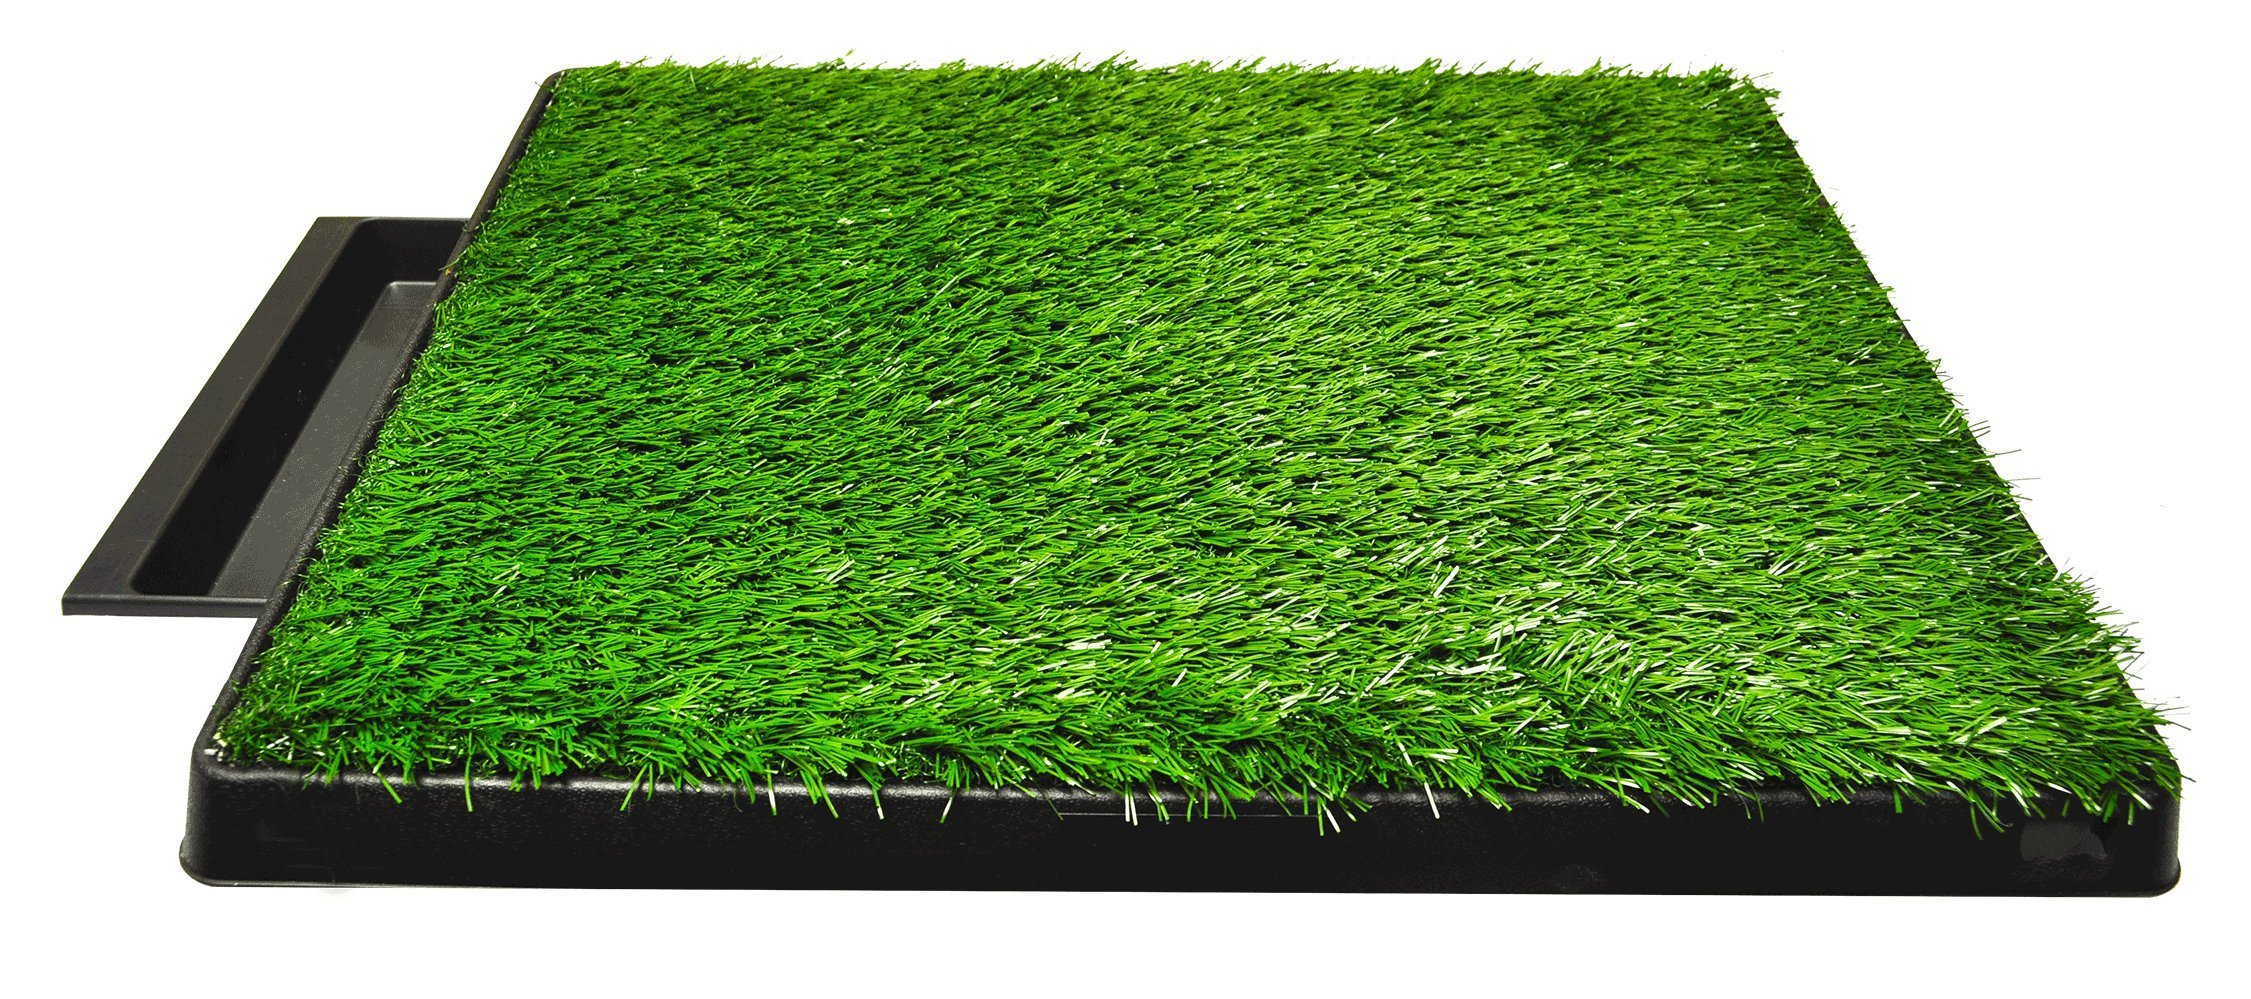 Downtown Pet Supply Dog Pee Potty Pad, Bathroom Tinkle Artificial Grass Turf, Portable Potty Trainer (20 x 25 inches with Drawer) by Downtown Pet Supply (Image #1)